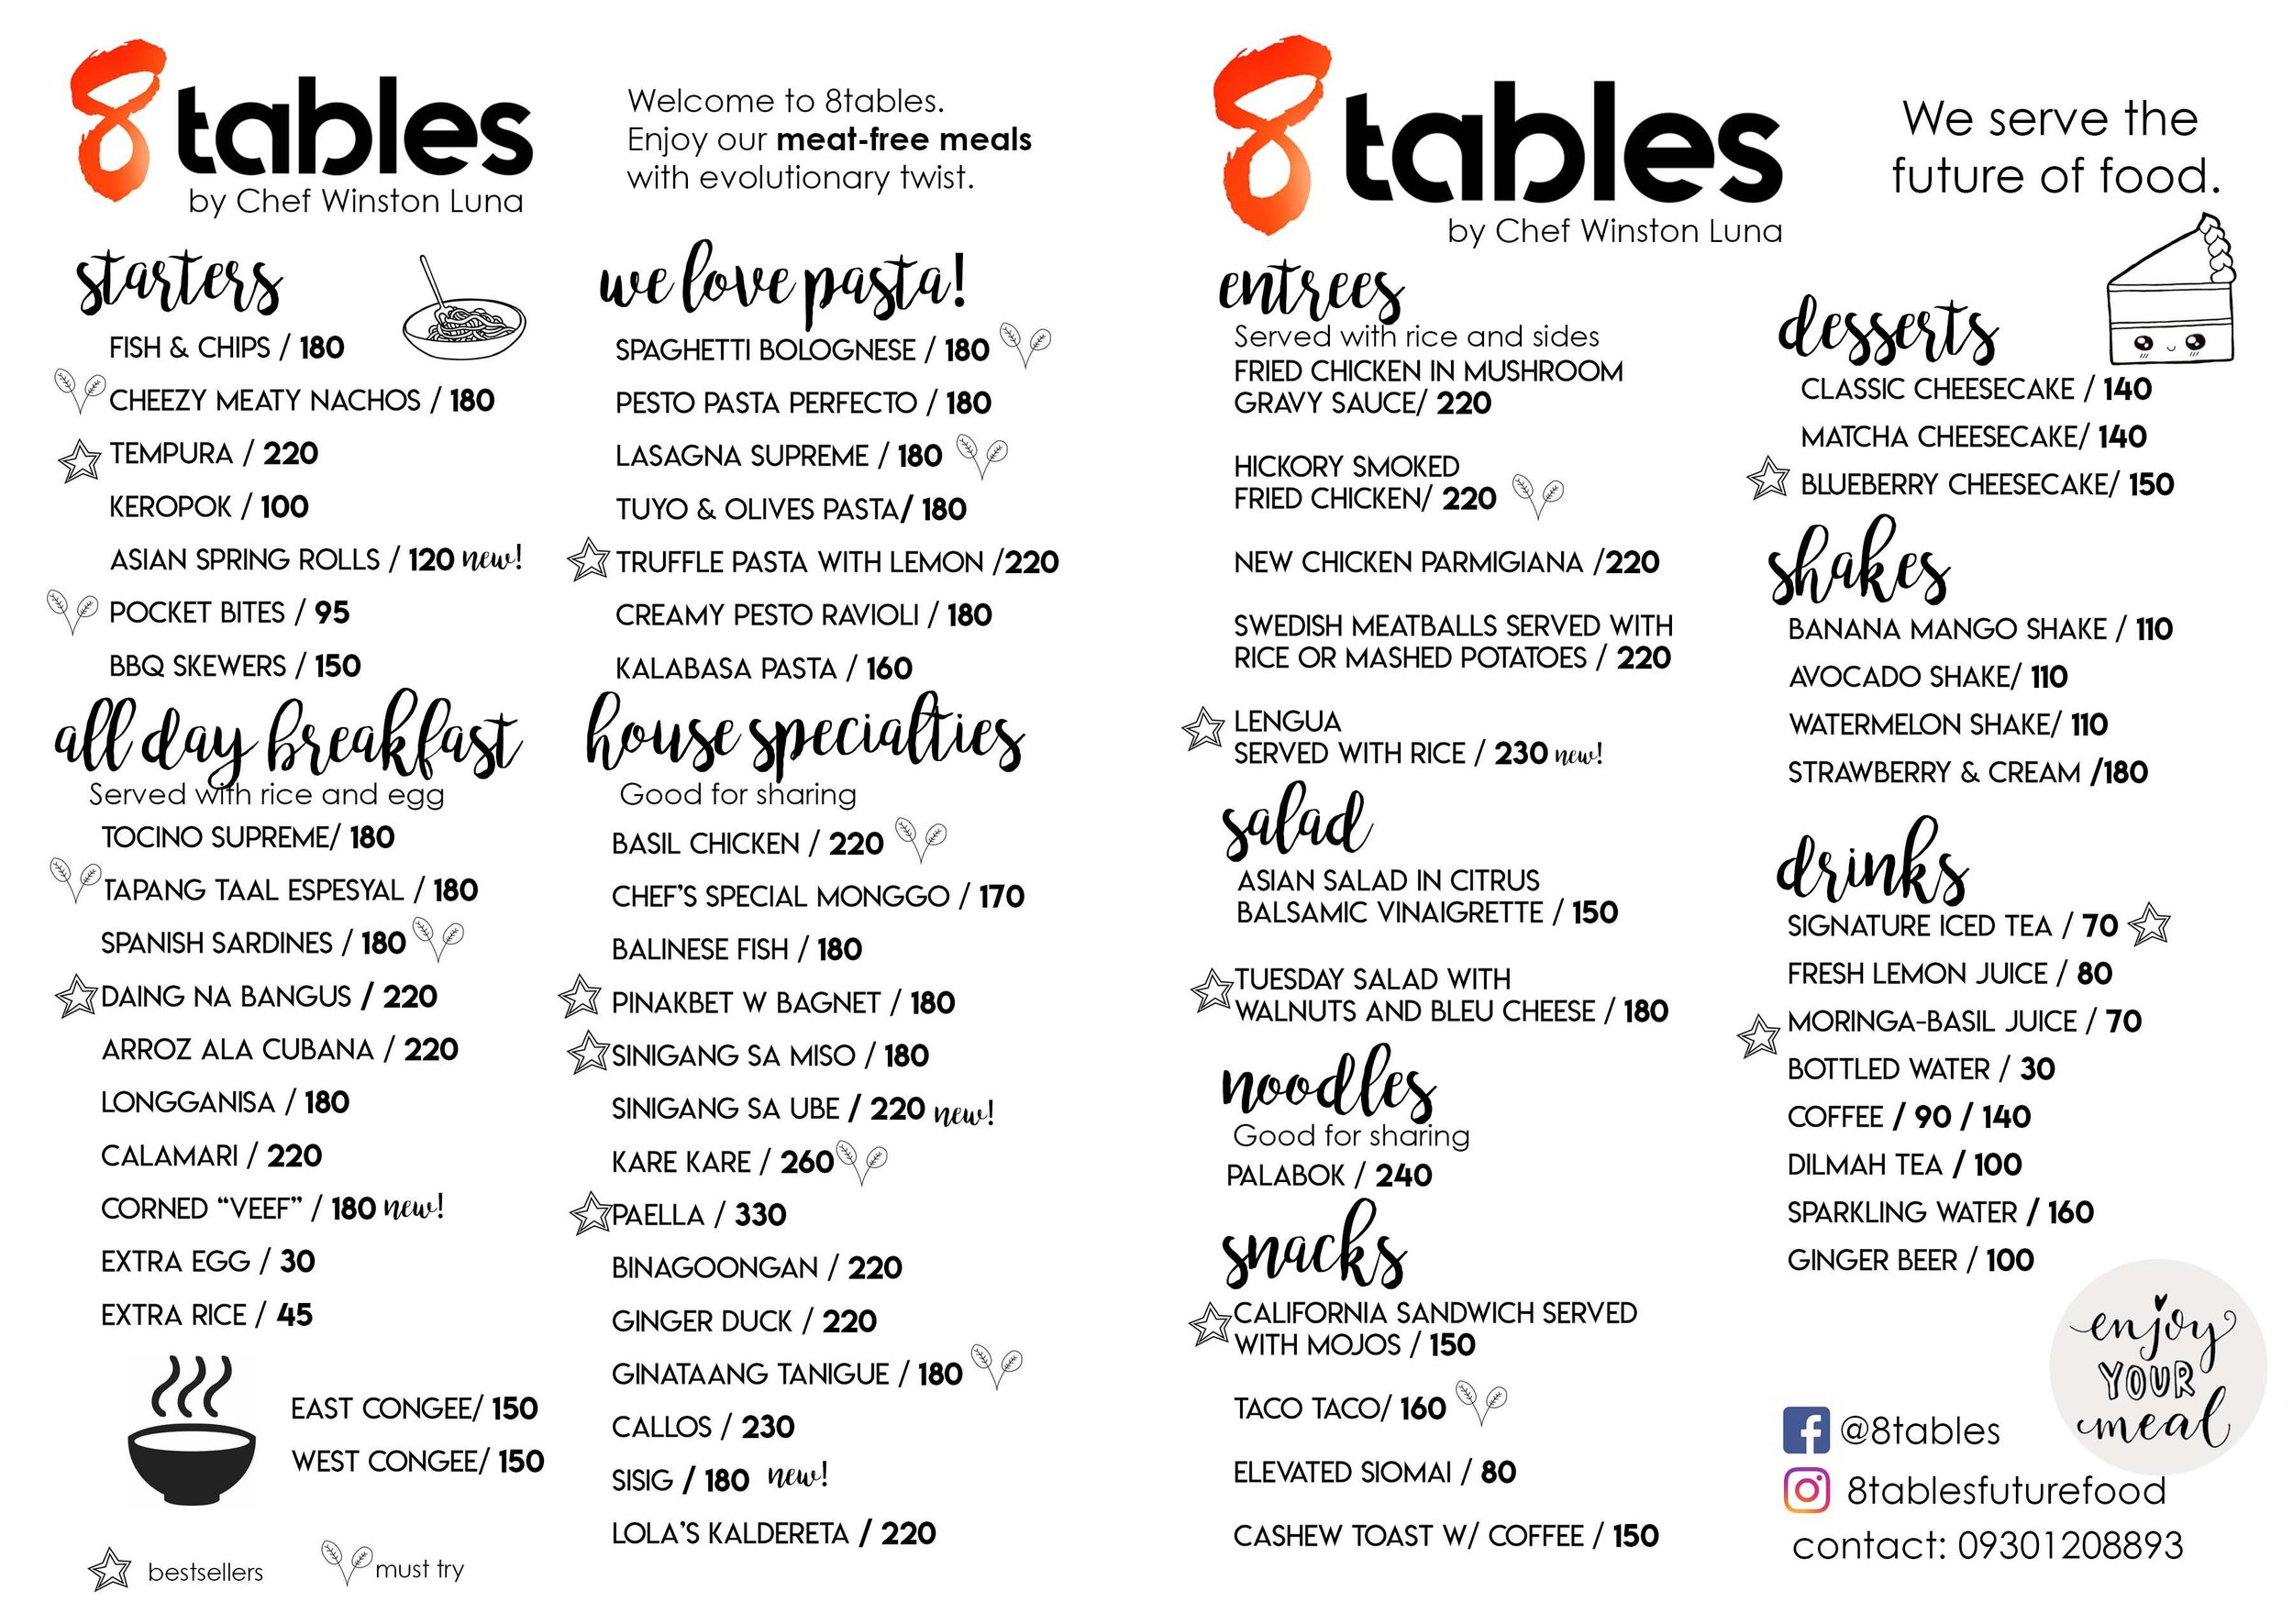 8 Tables in Congressional Ave  [Vegetarian / Meat-free